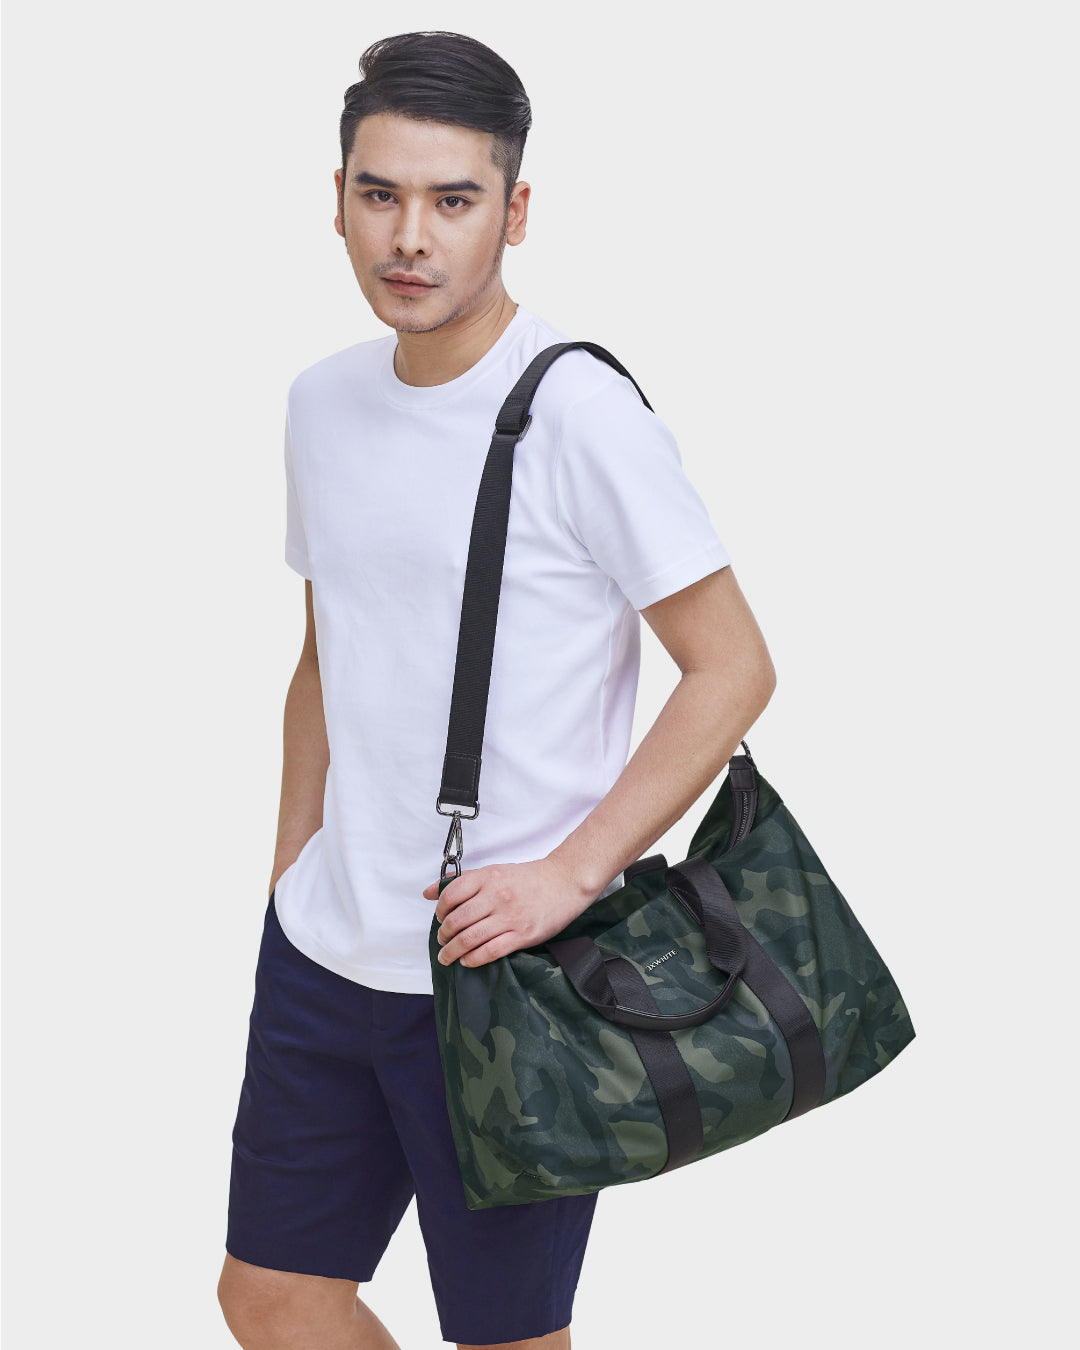 Ultralight Duffel Bag